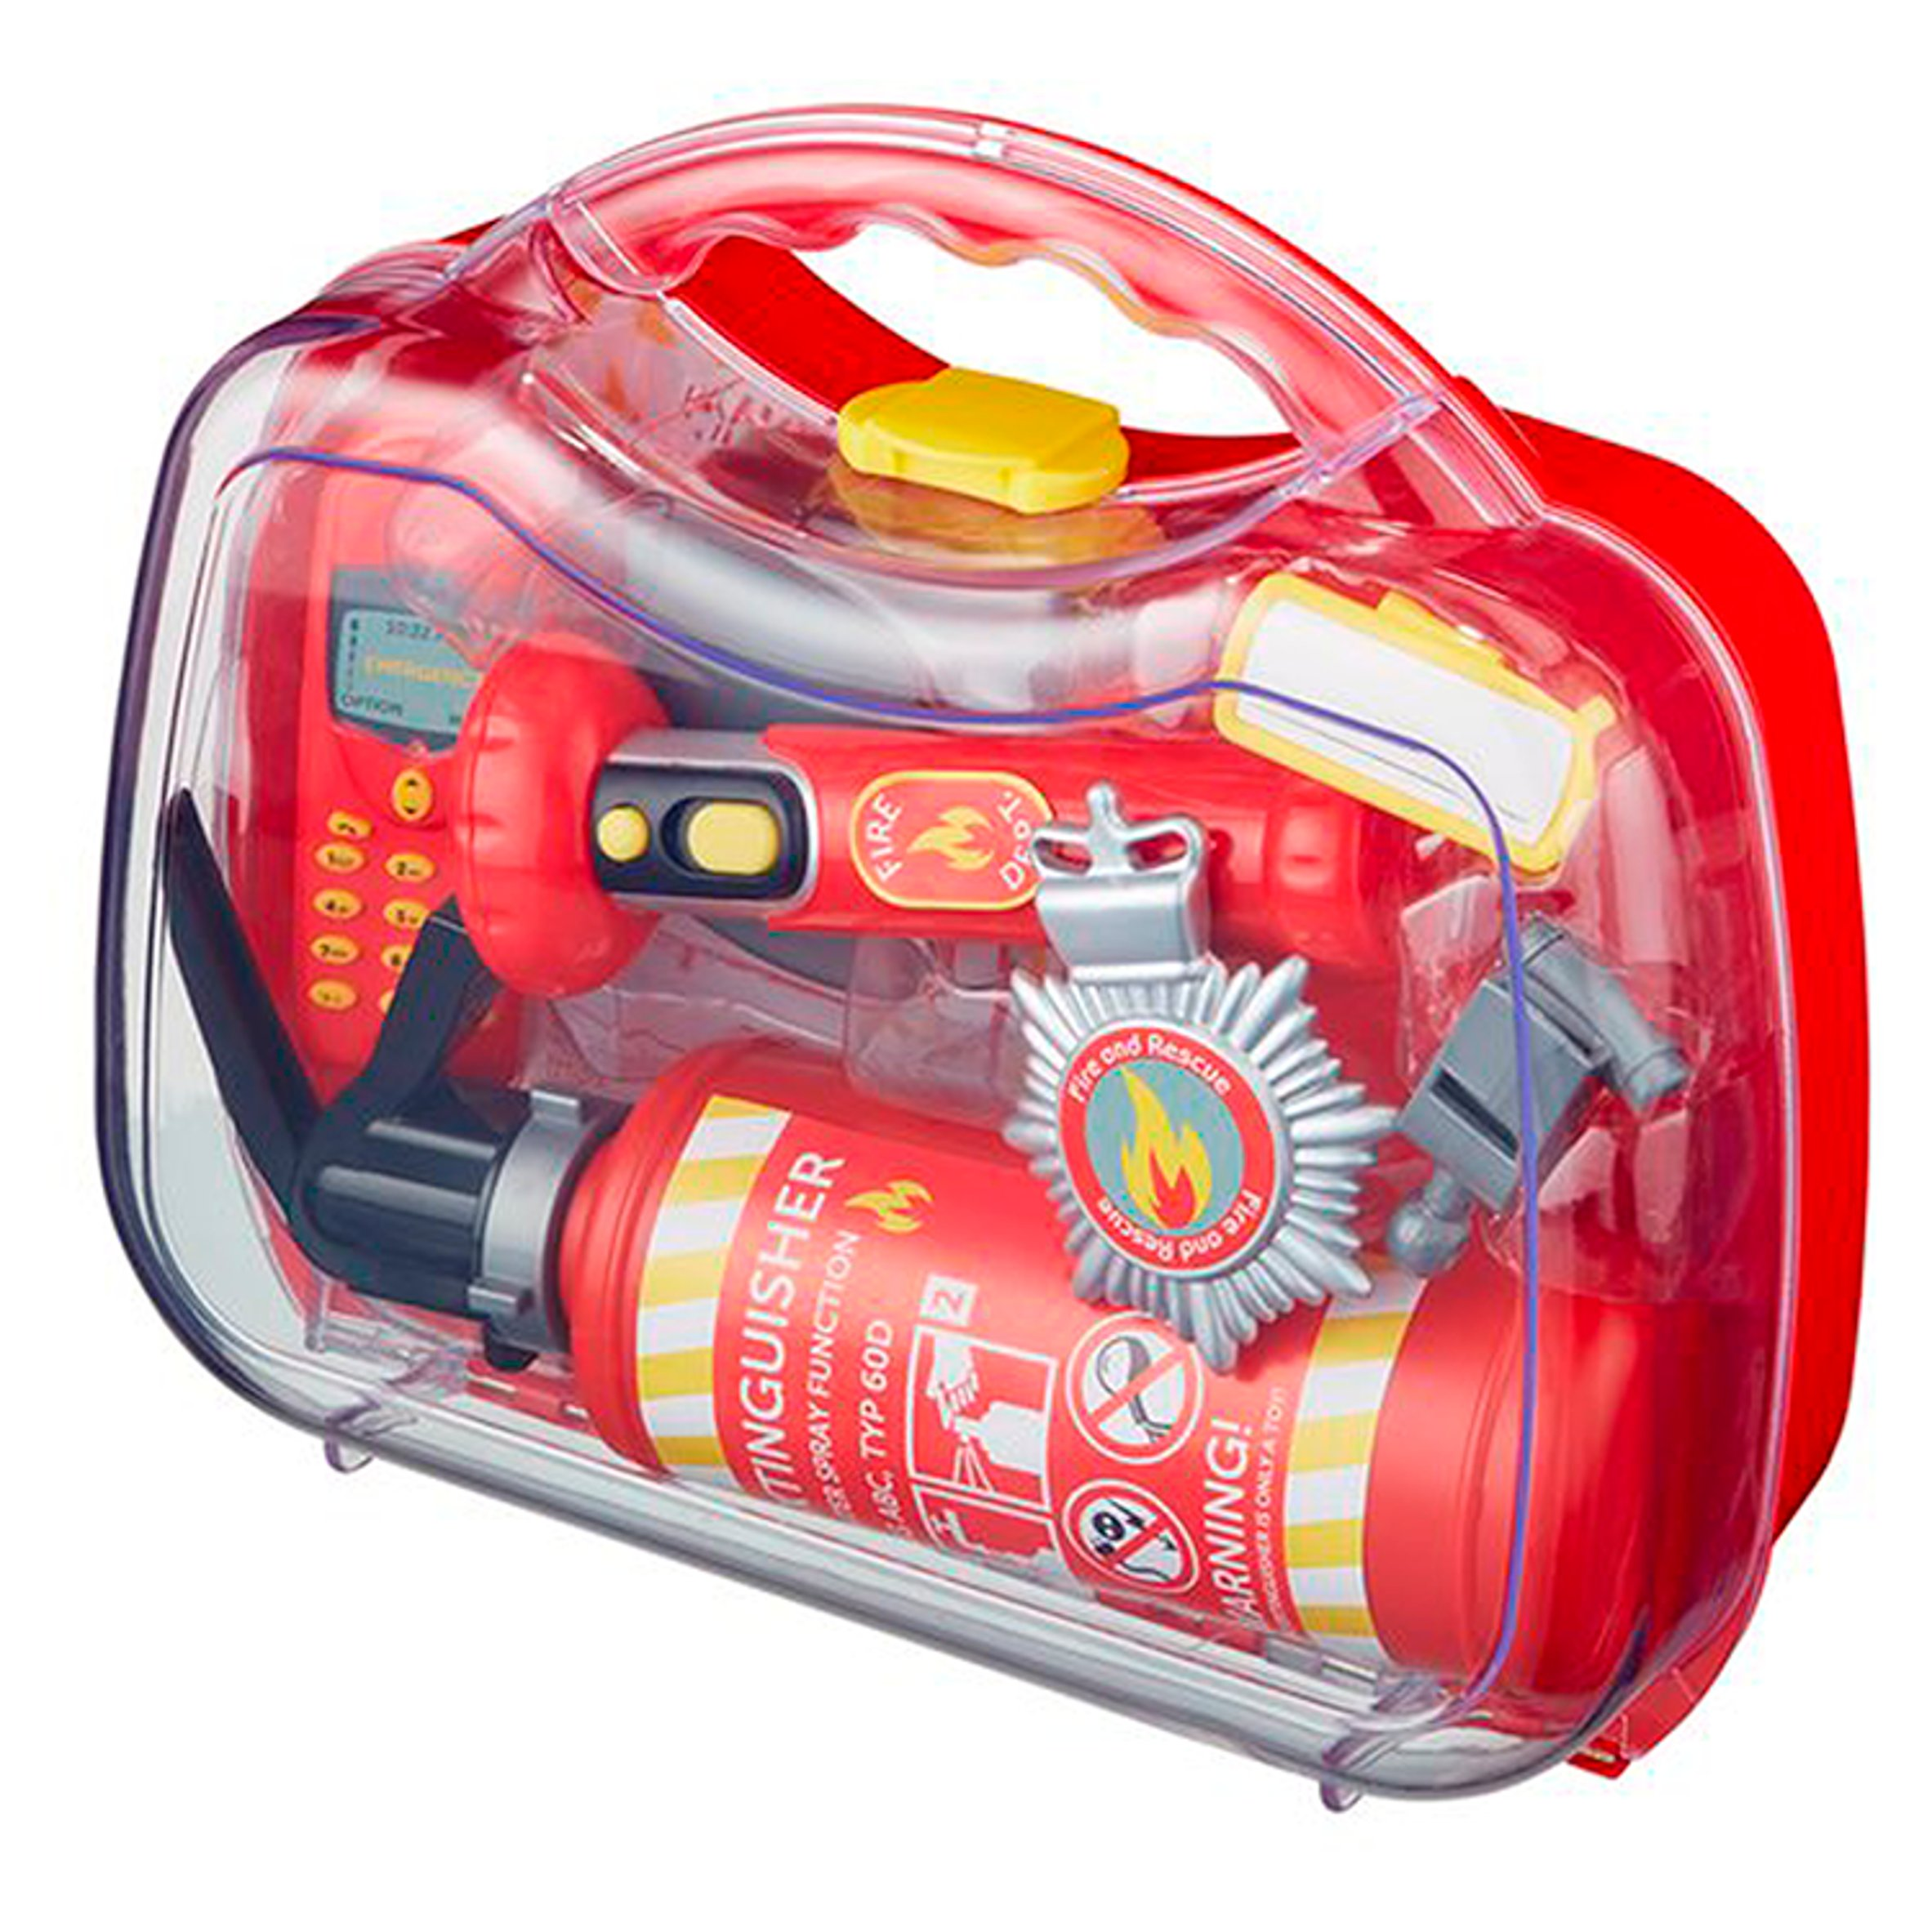 Carousel Fire Fighter Case